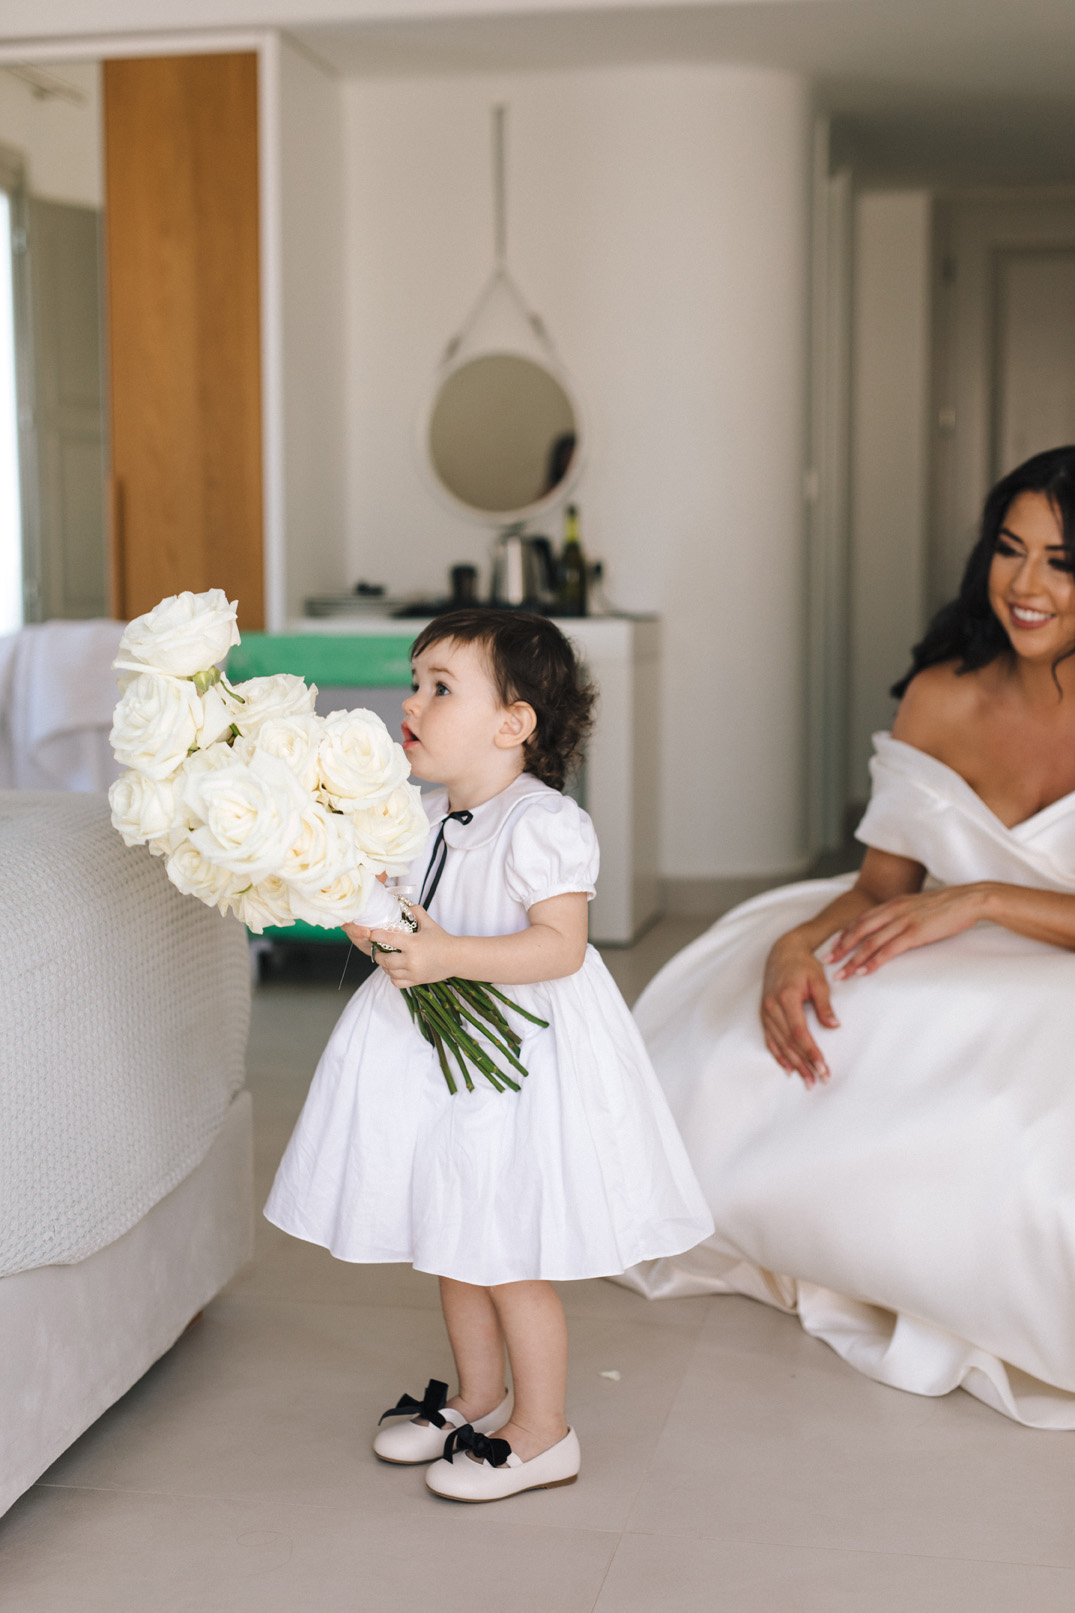 The bride and her daughter are now ready